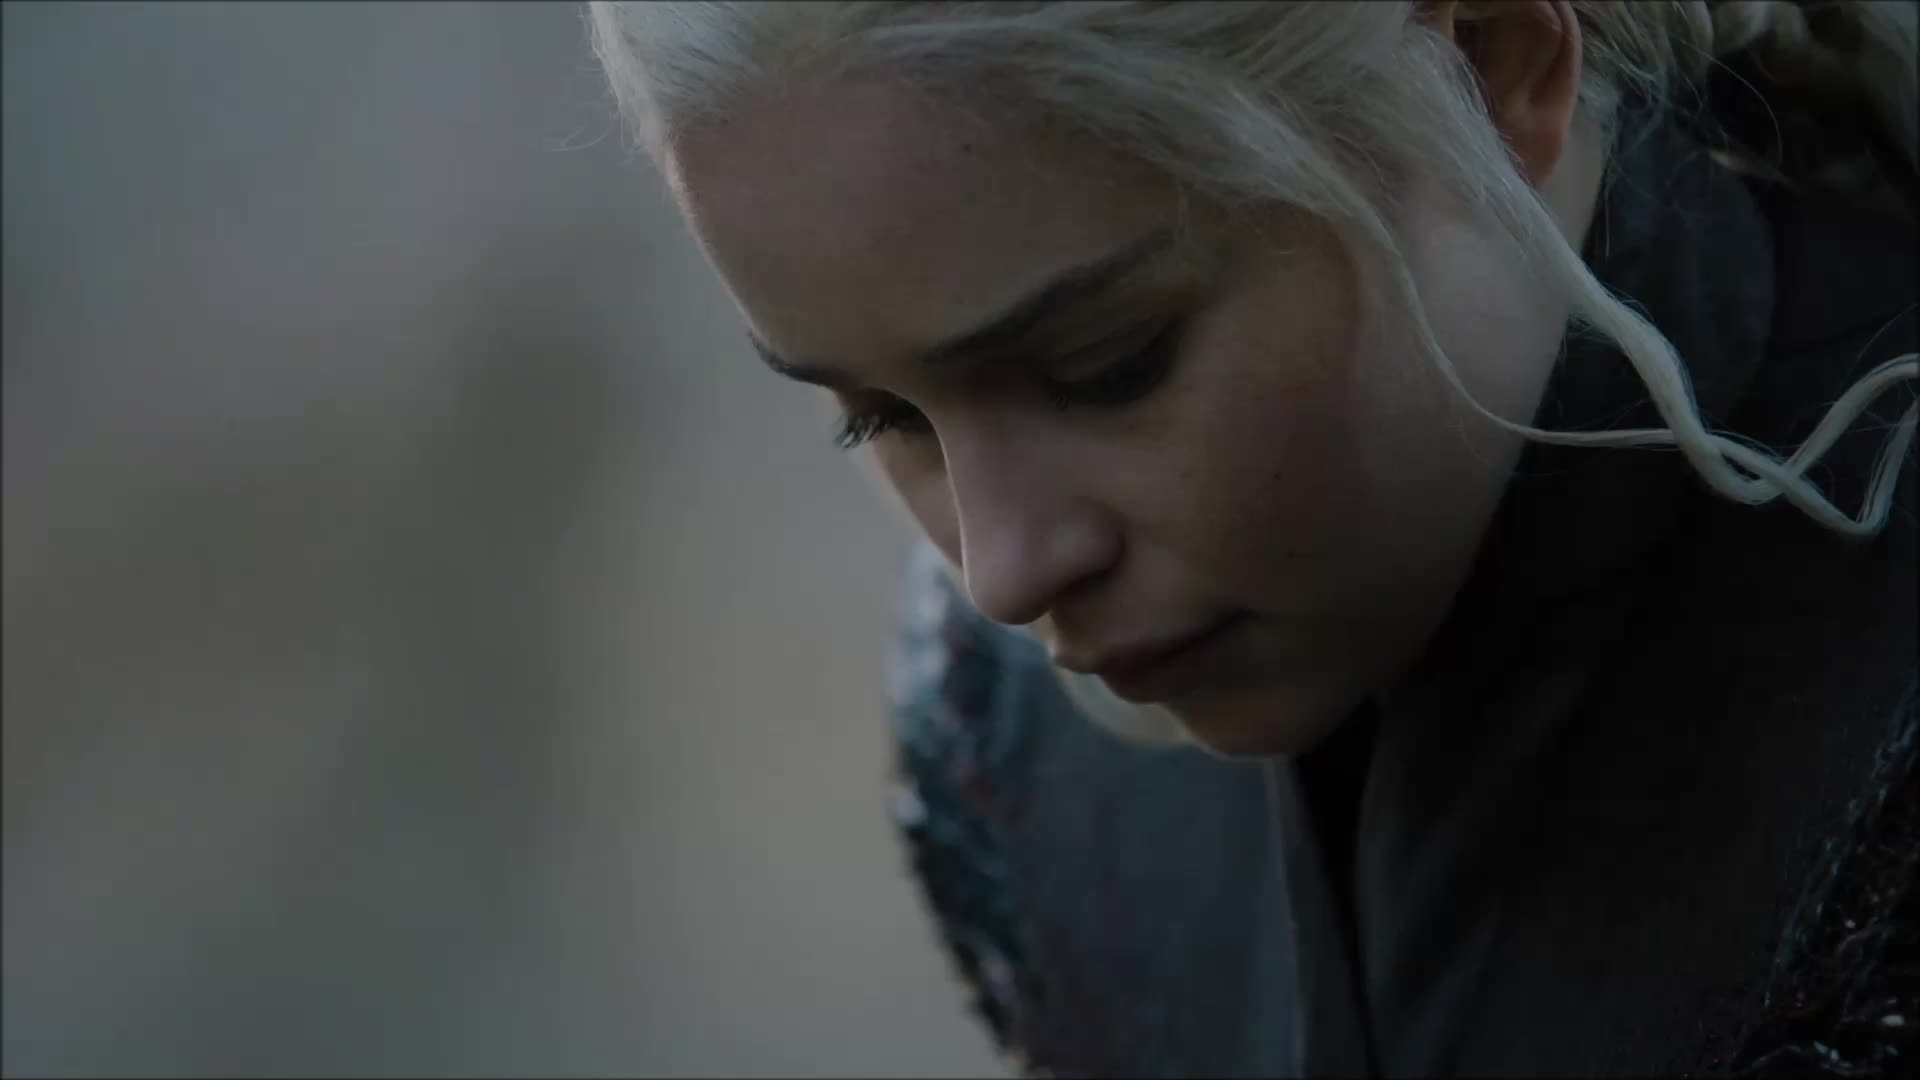 Emilia Clarke, Game of Thrones Season 7 Episode 1, GoT, GoT ep 1s7, game of thrones, She looks so lost. GIFs